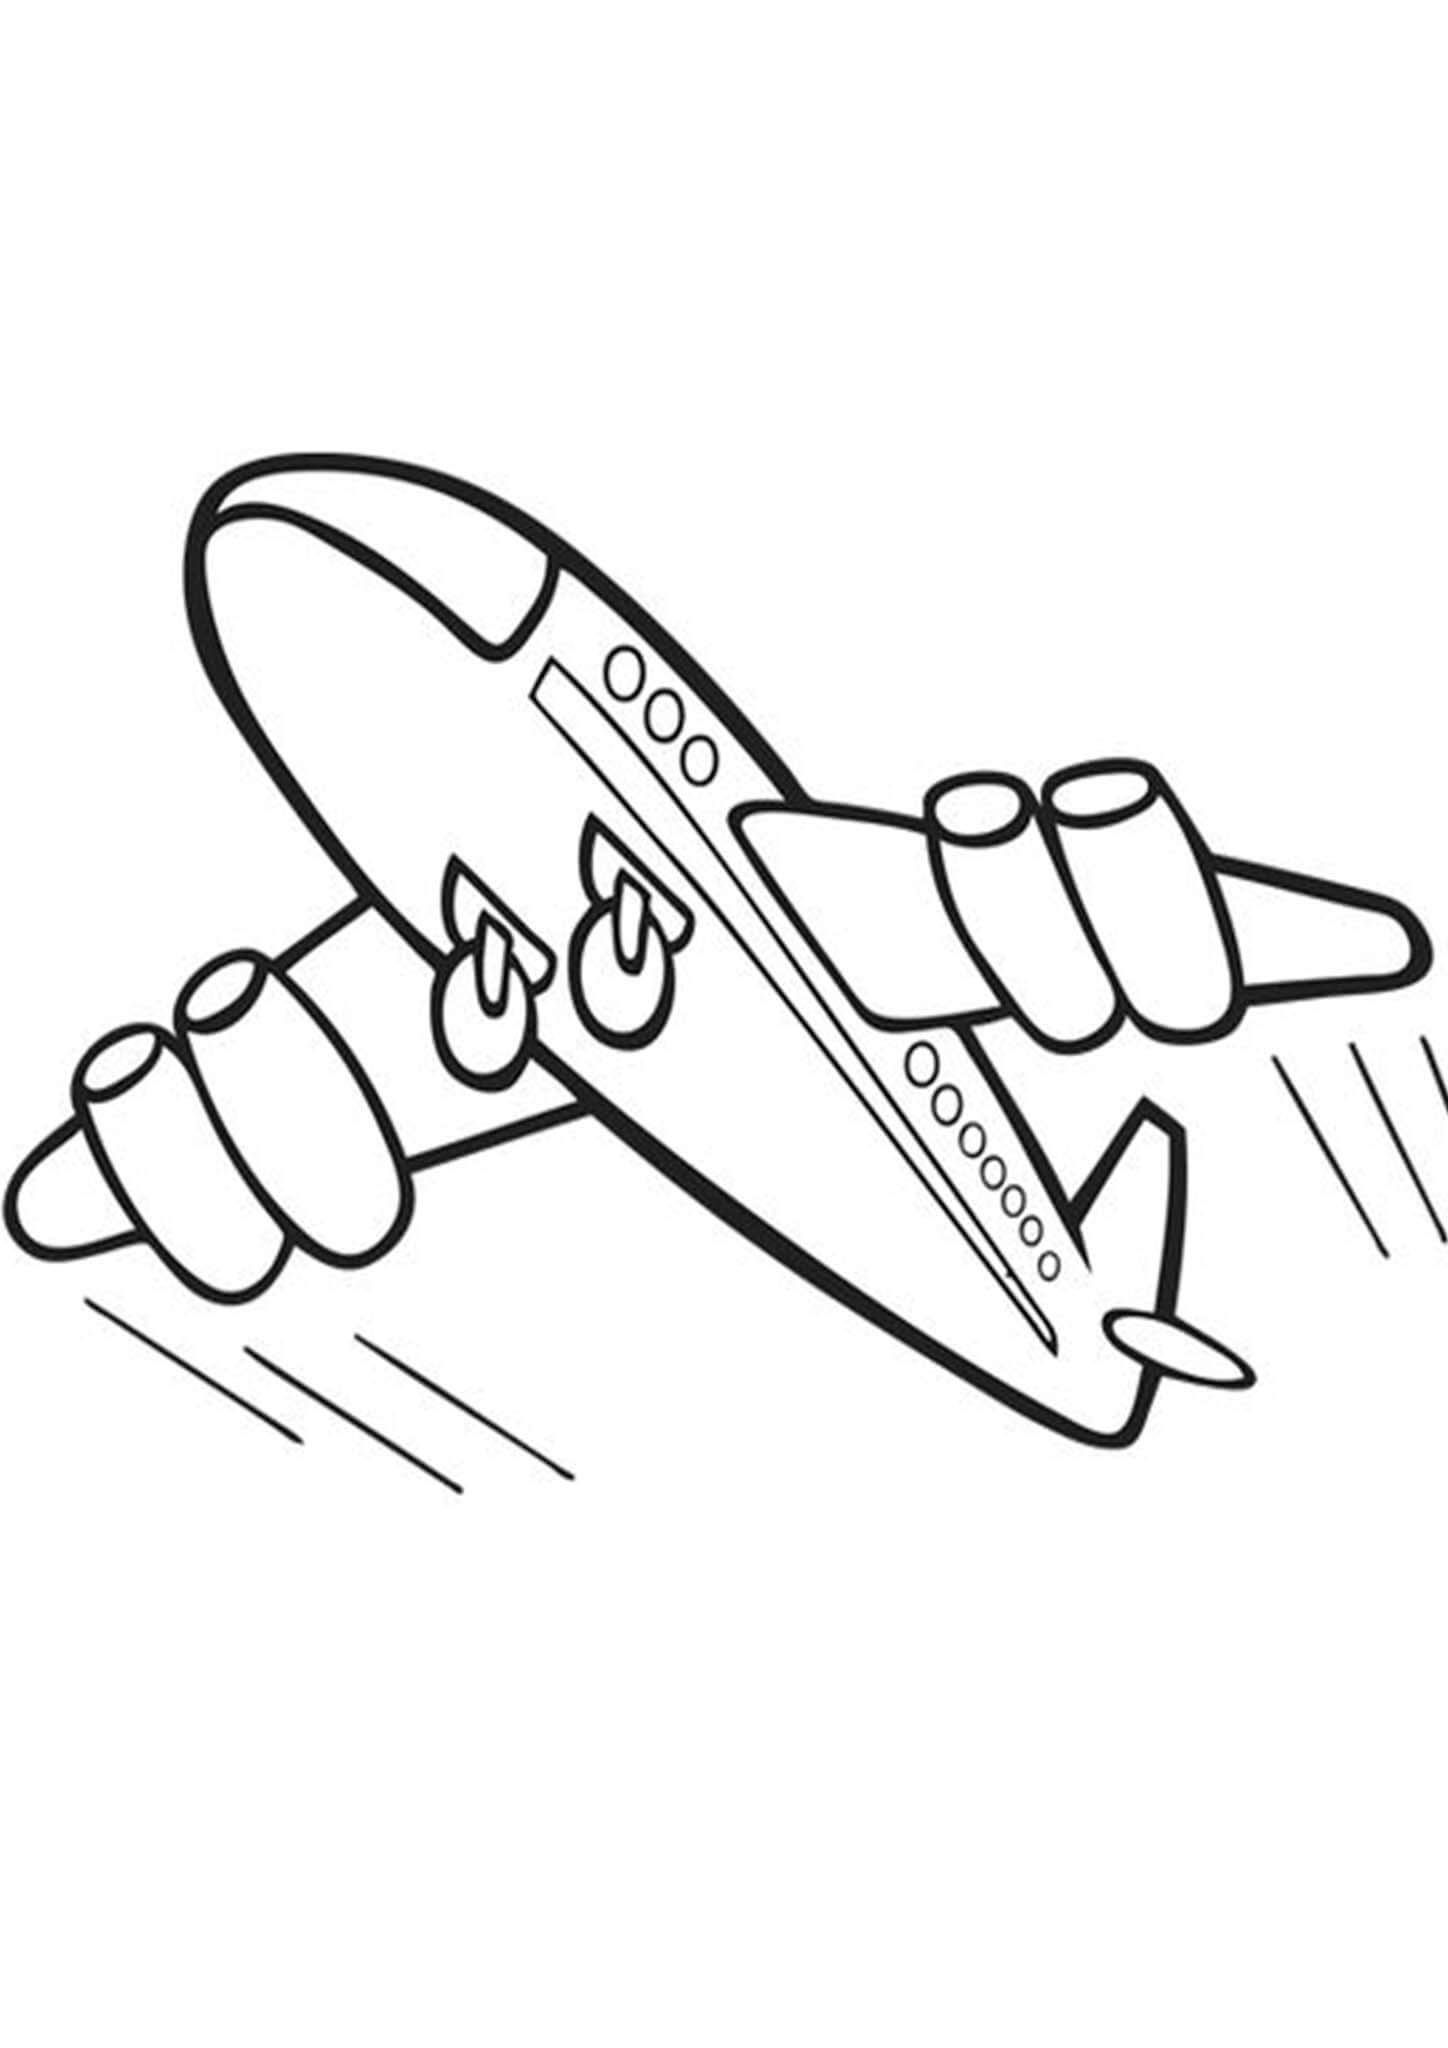 Pin On Planes Trains Trucks Cars Coloring Pages